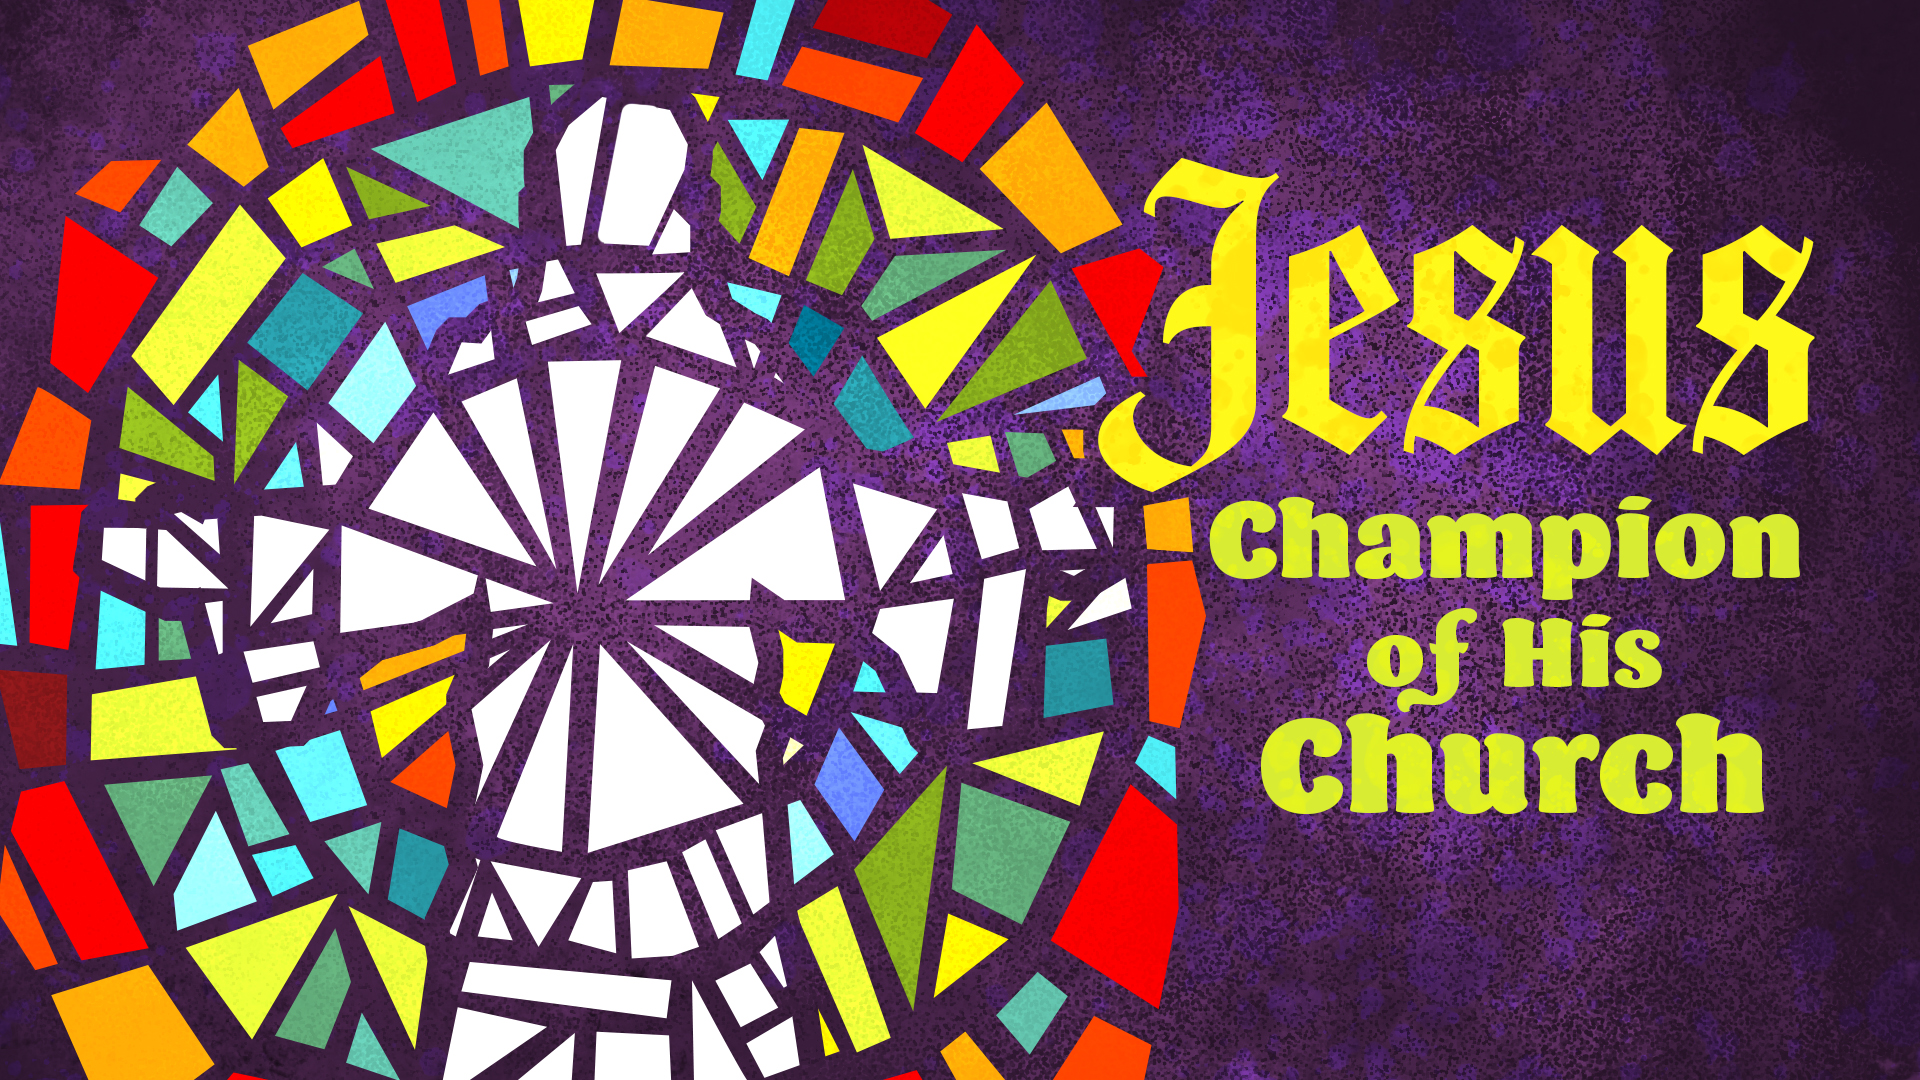 Jesus: Champion of His Church